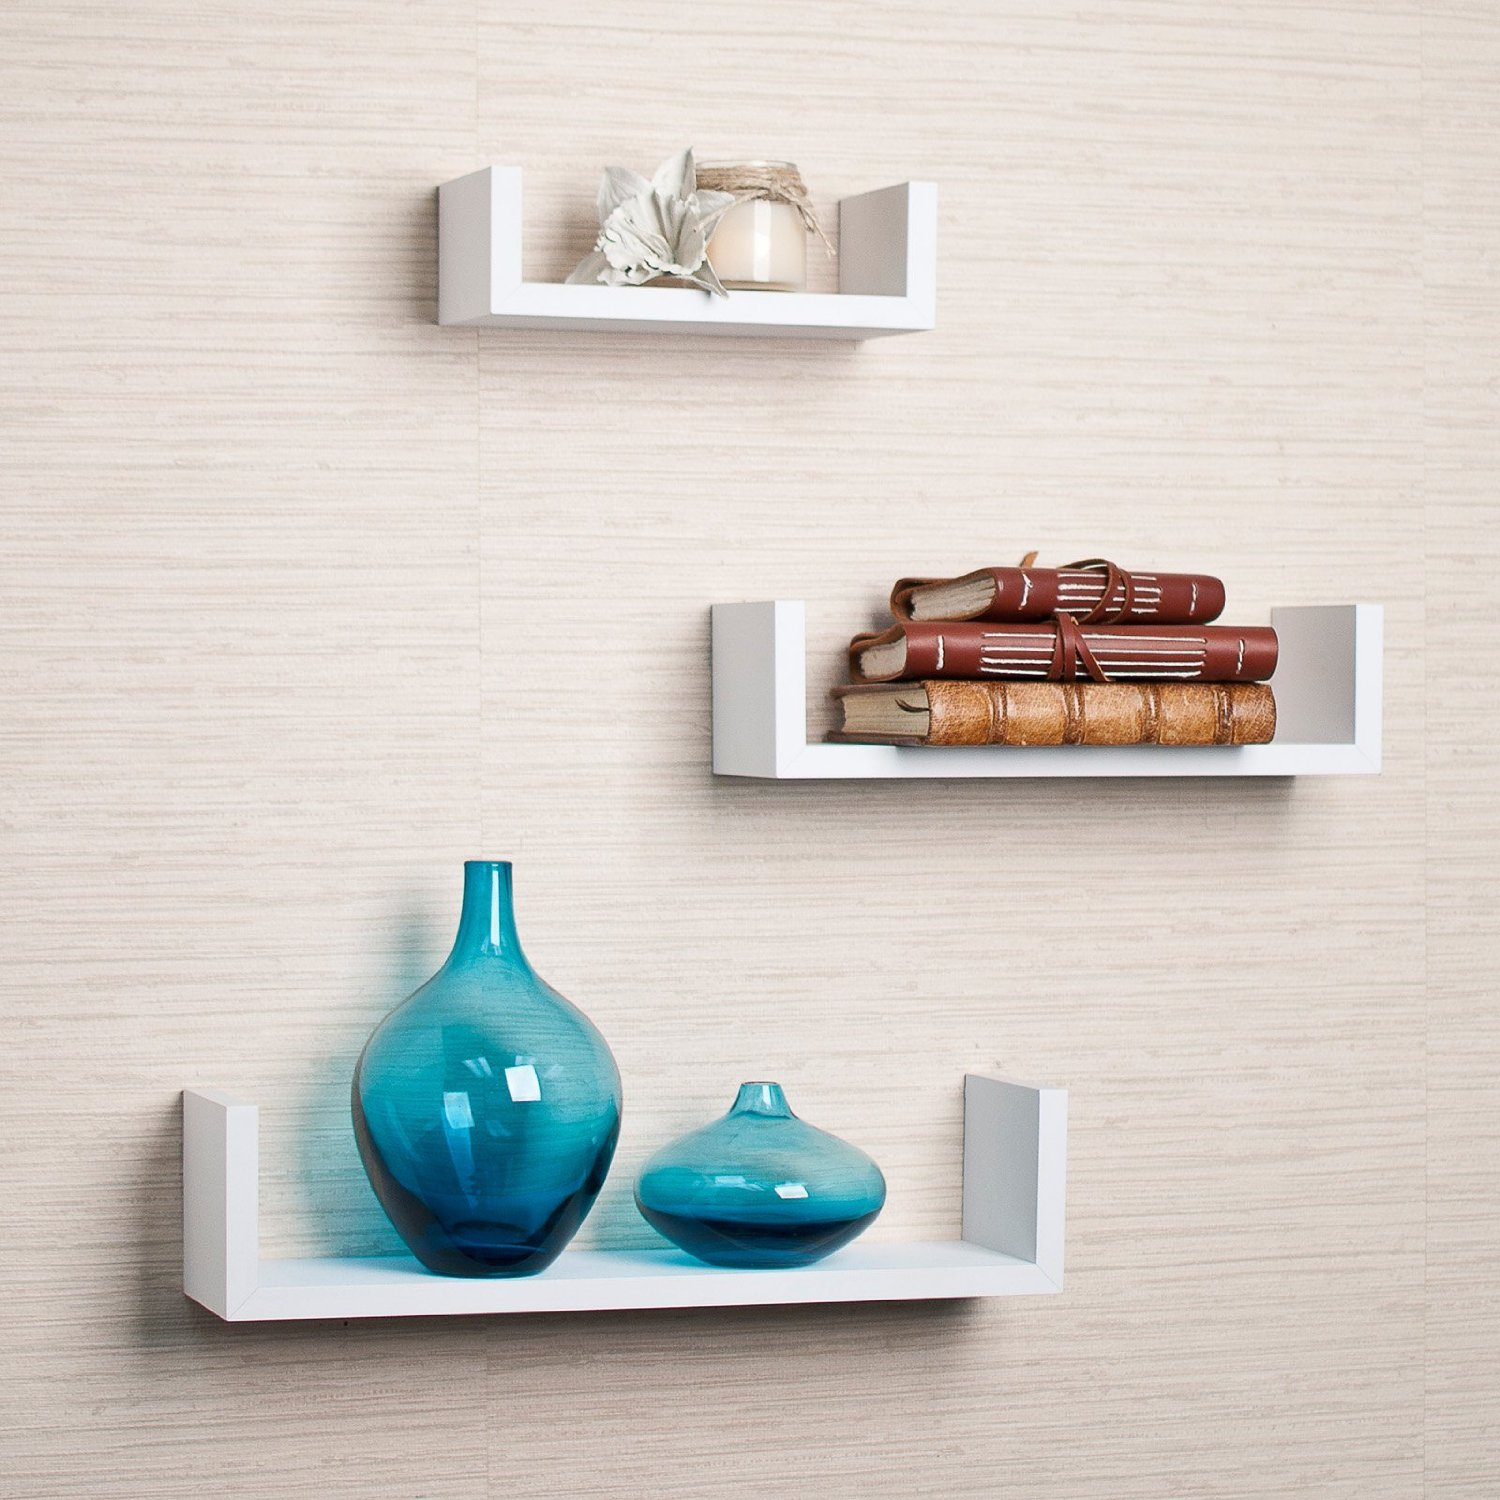 set of 3 white floating u shelves for your home interior - review 3 Wall Shelves